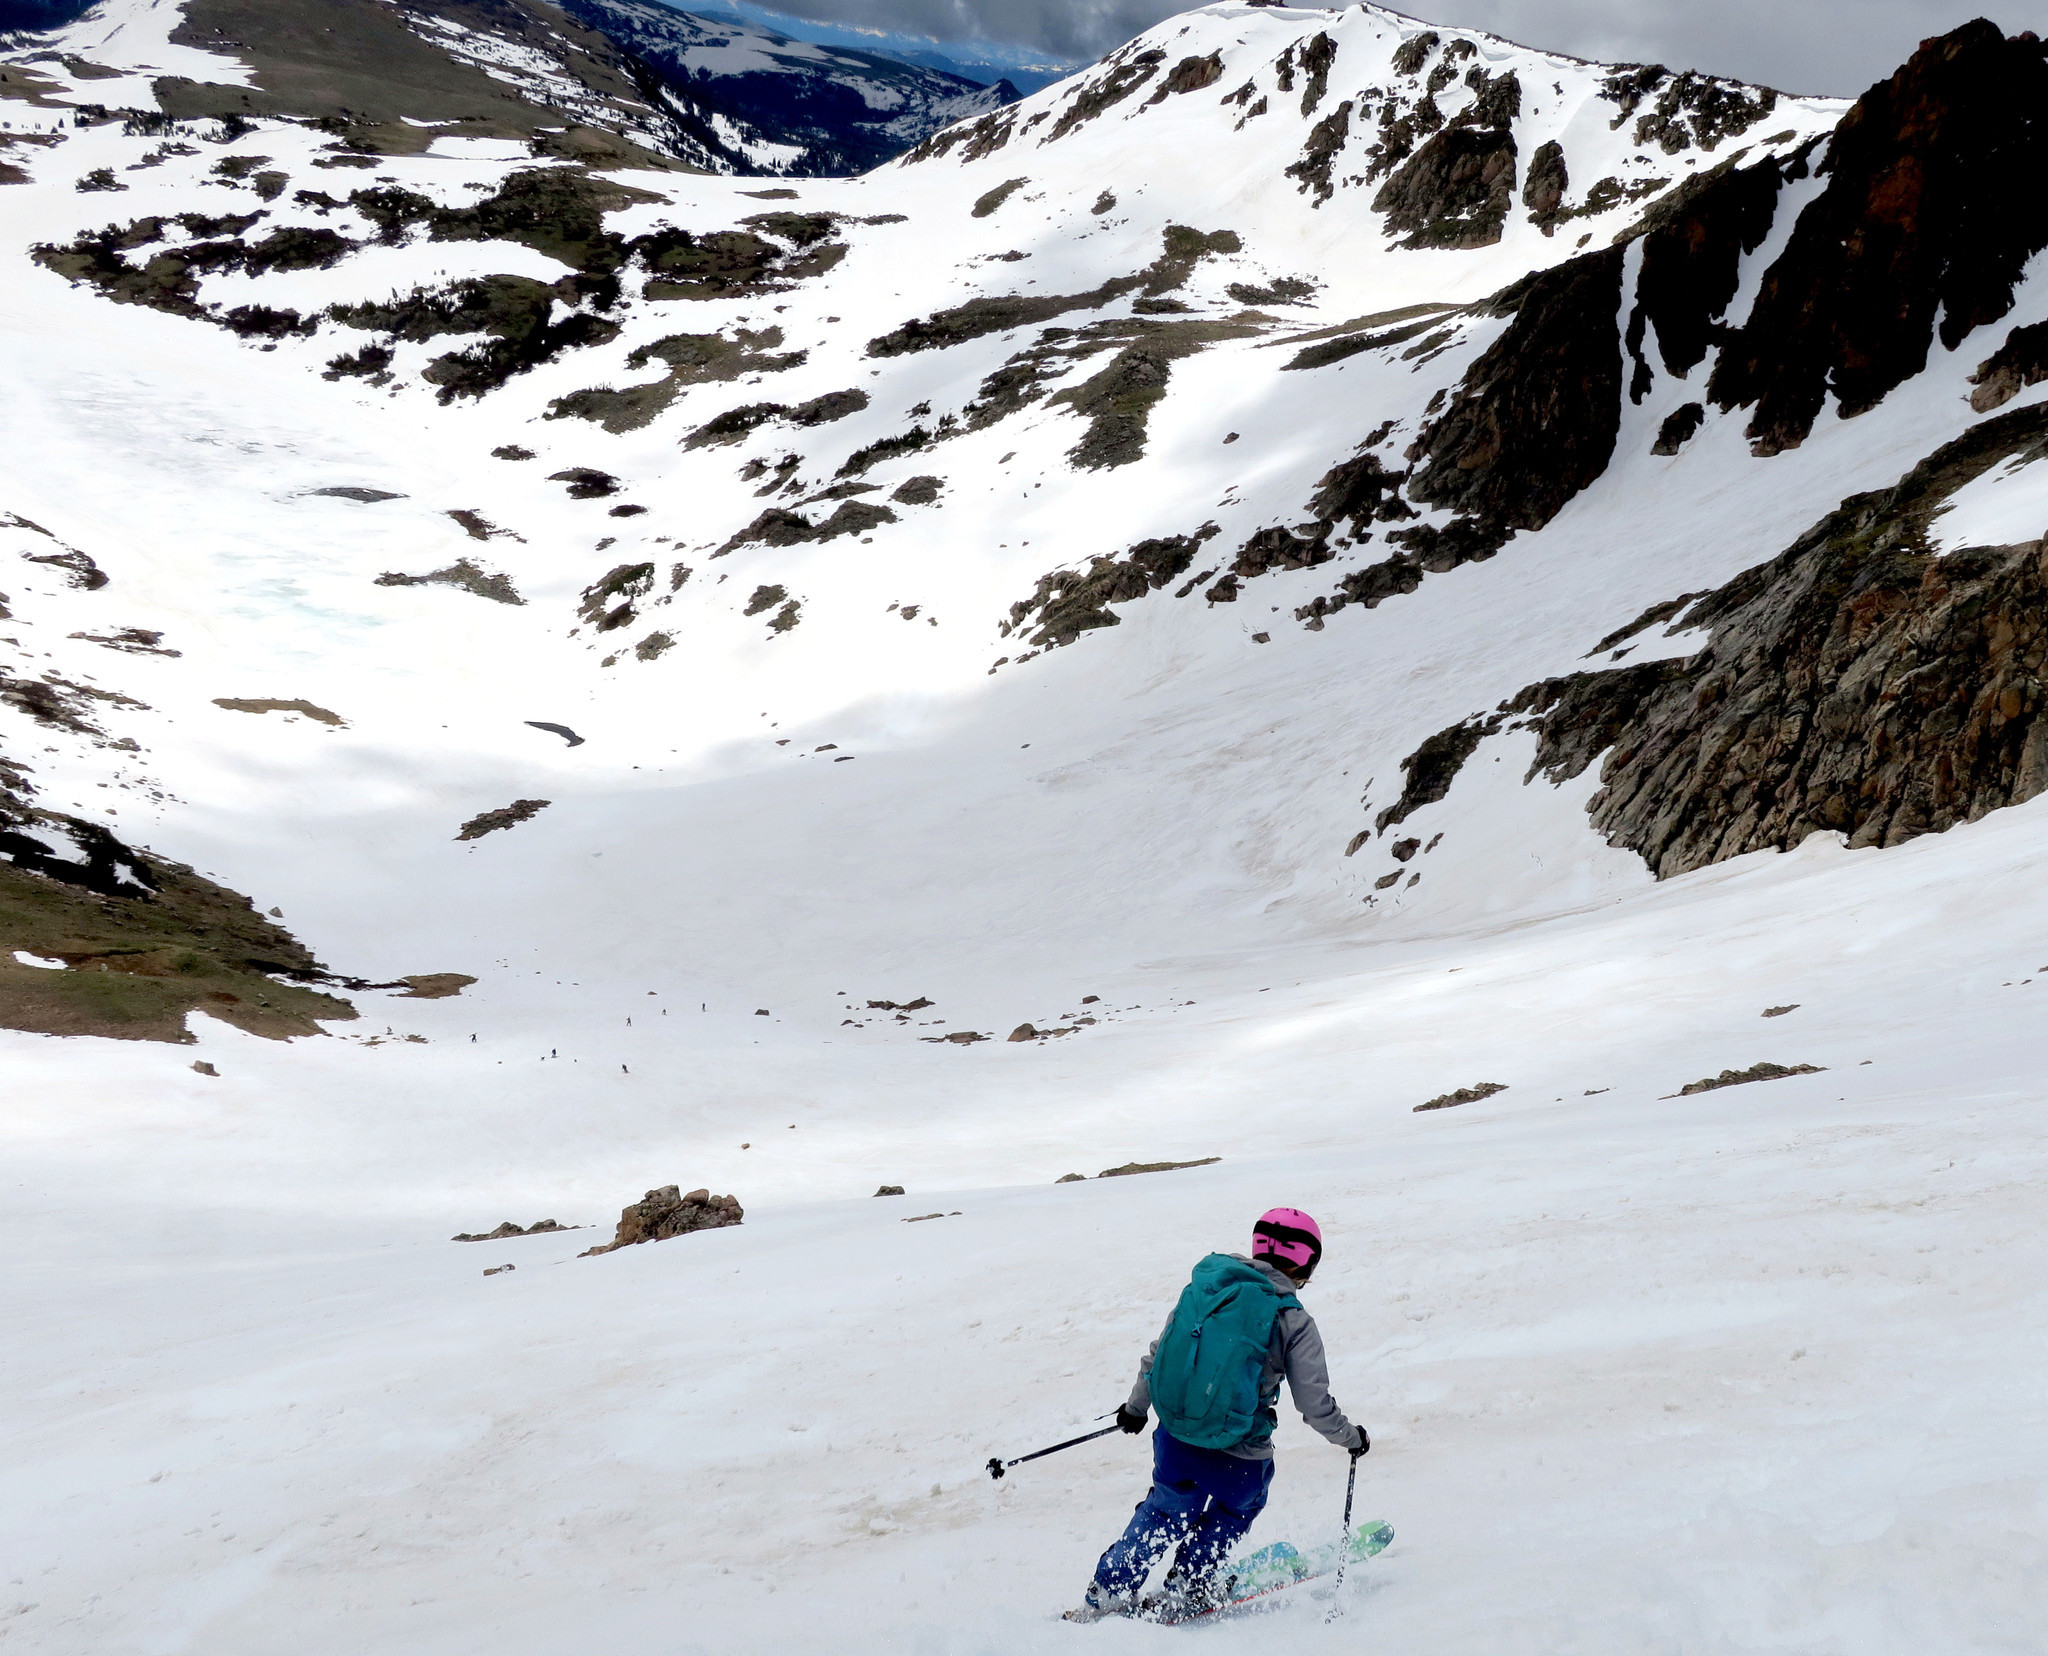 A skier drops in on the Gardner Headwall along the Beartooth Highway.